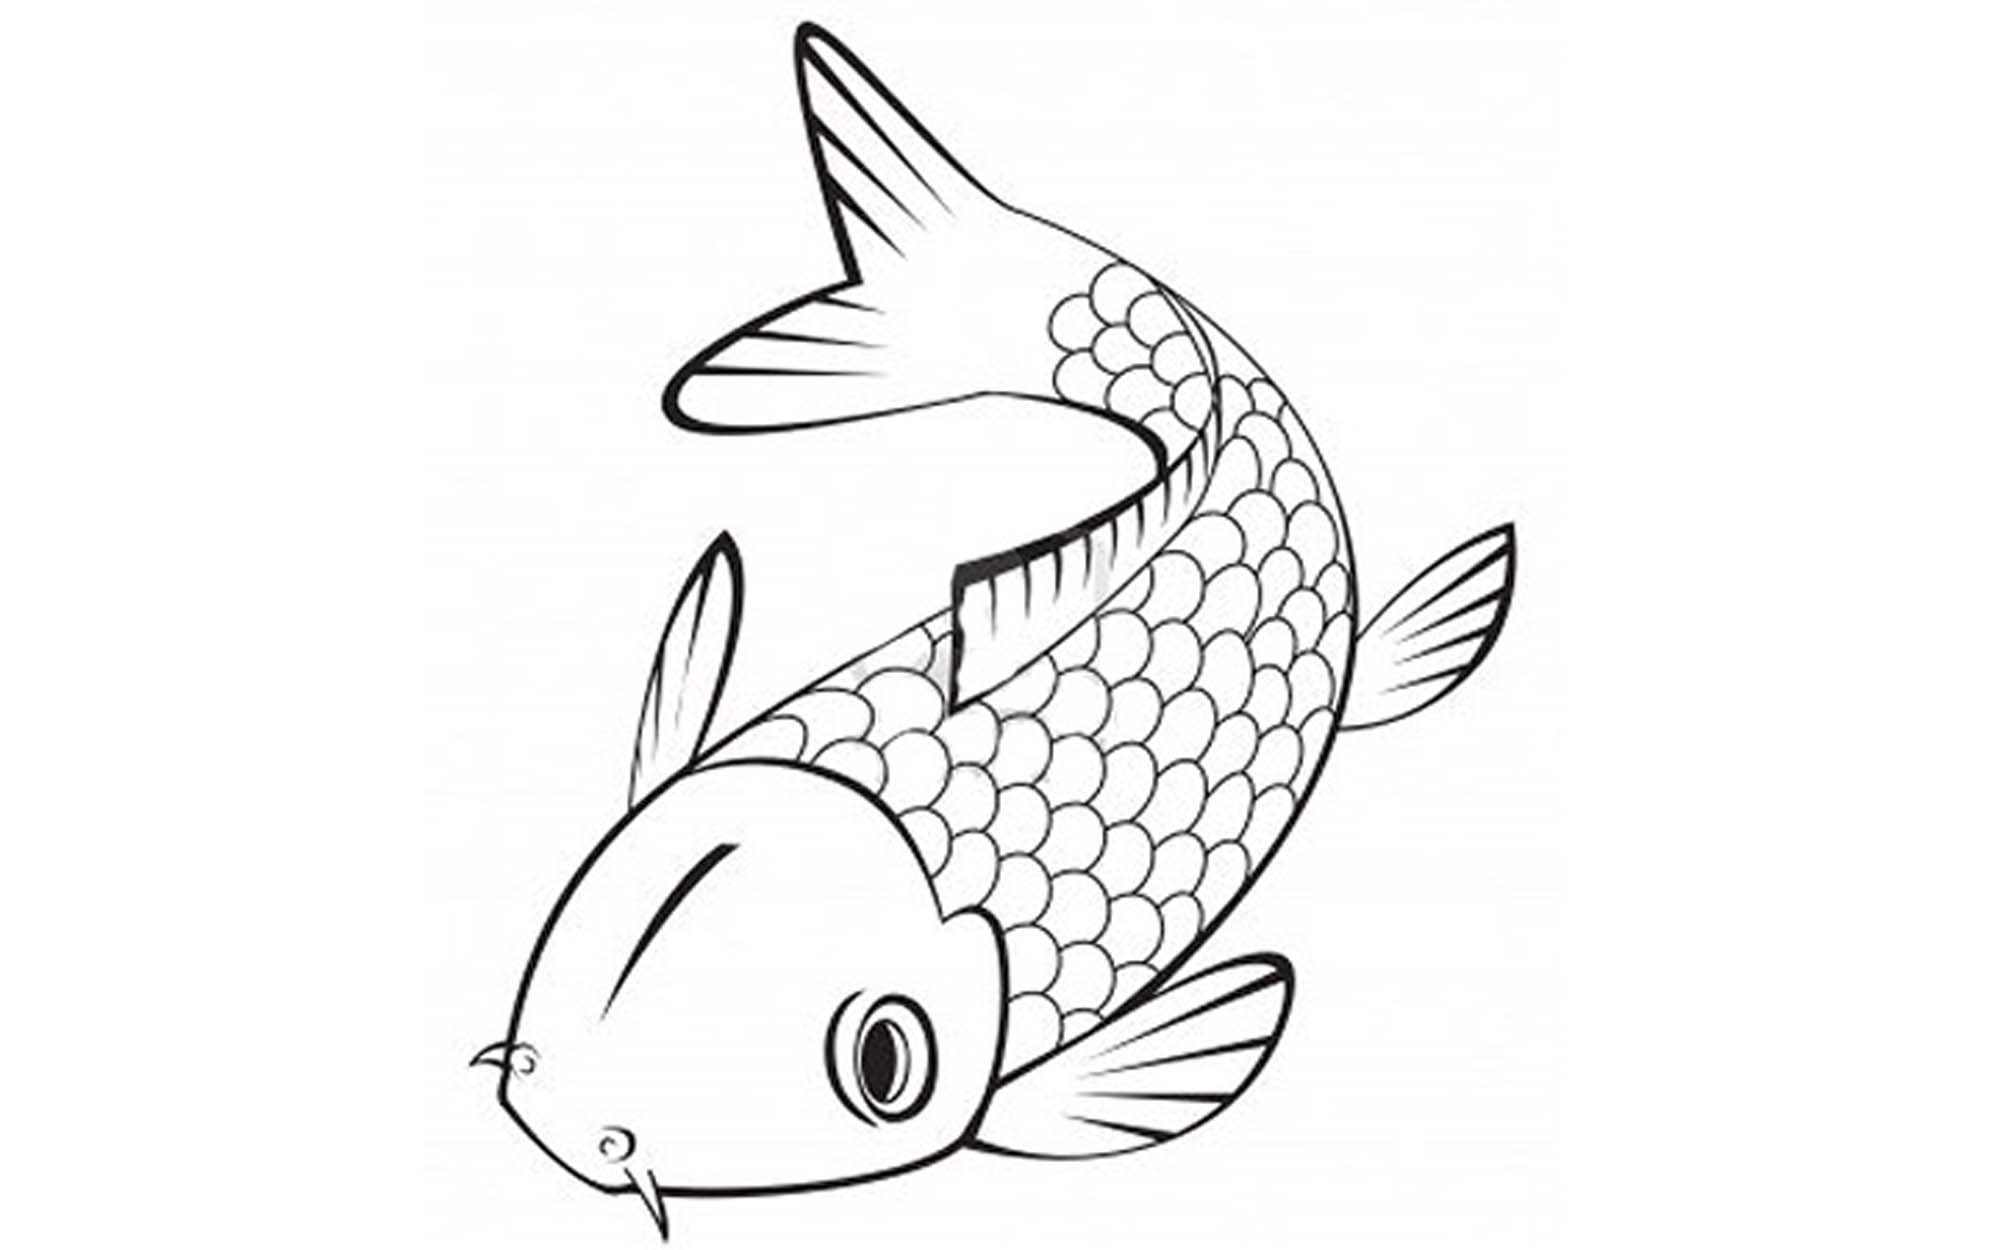 fish coloring pages to print - photo#36